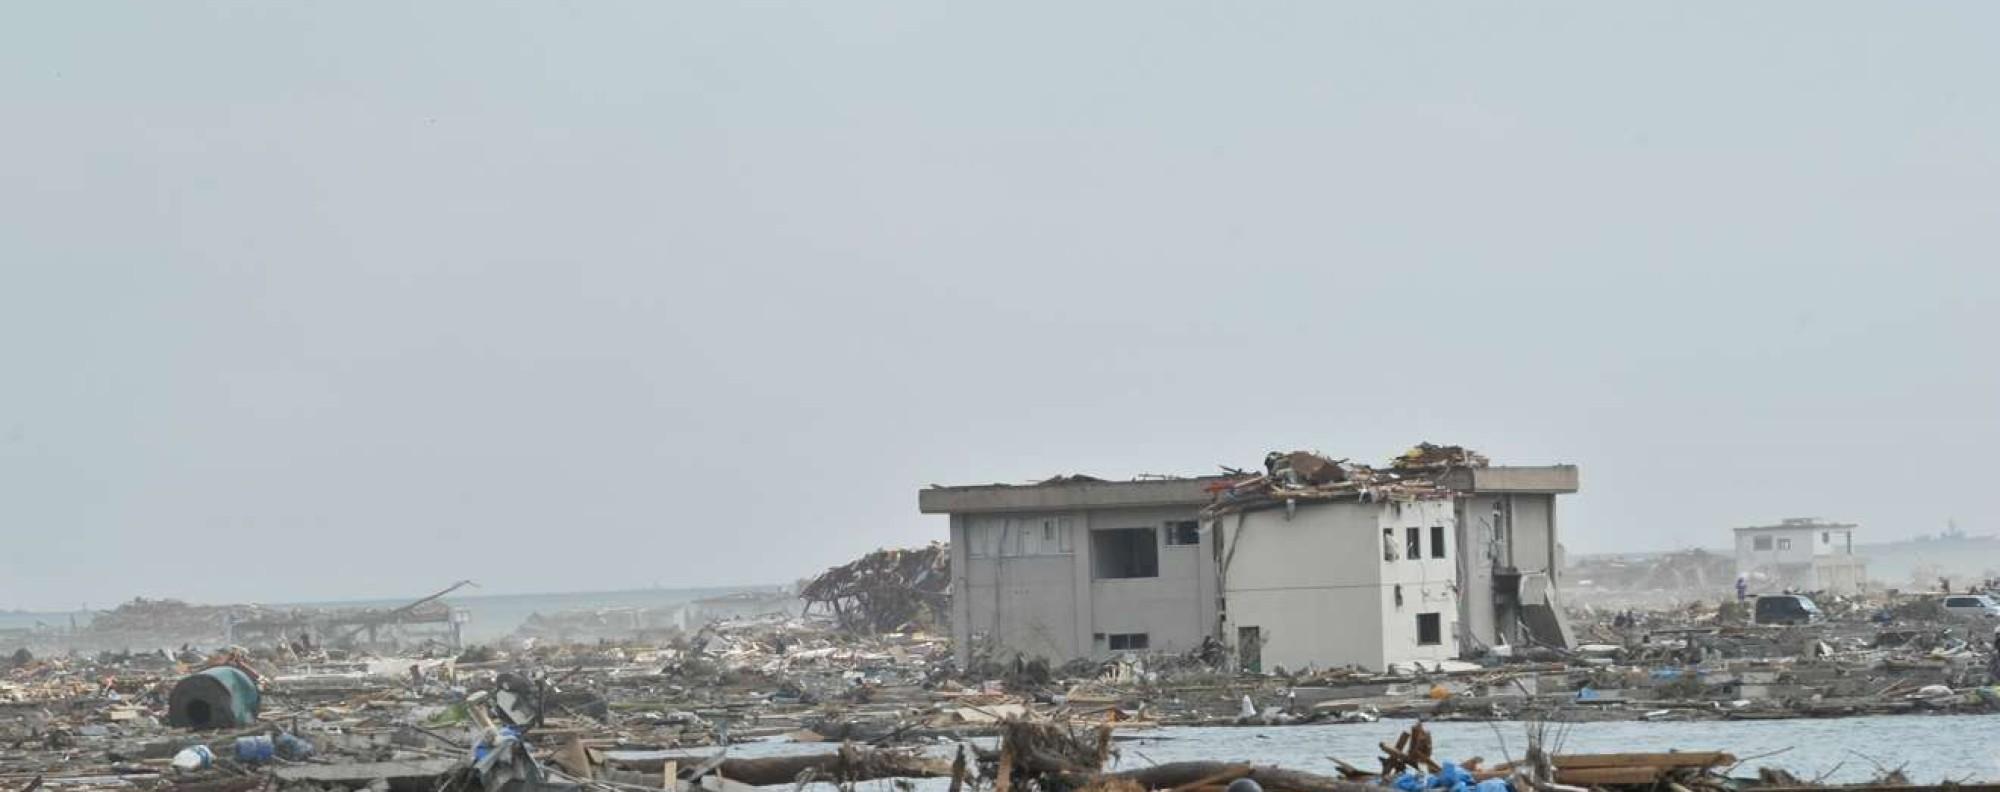 The ruins of the town of Rikuzentakata left behind by the March 19, 2011 disaster. Photo: AFP